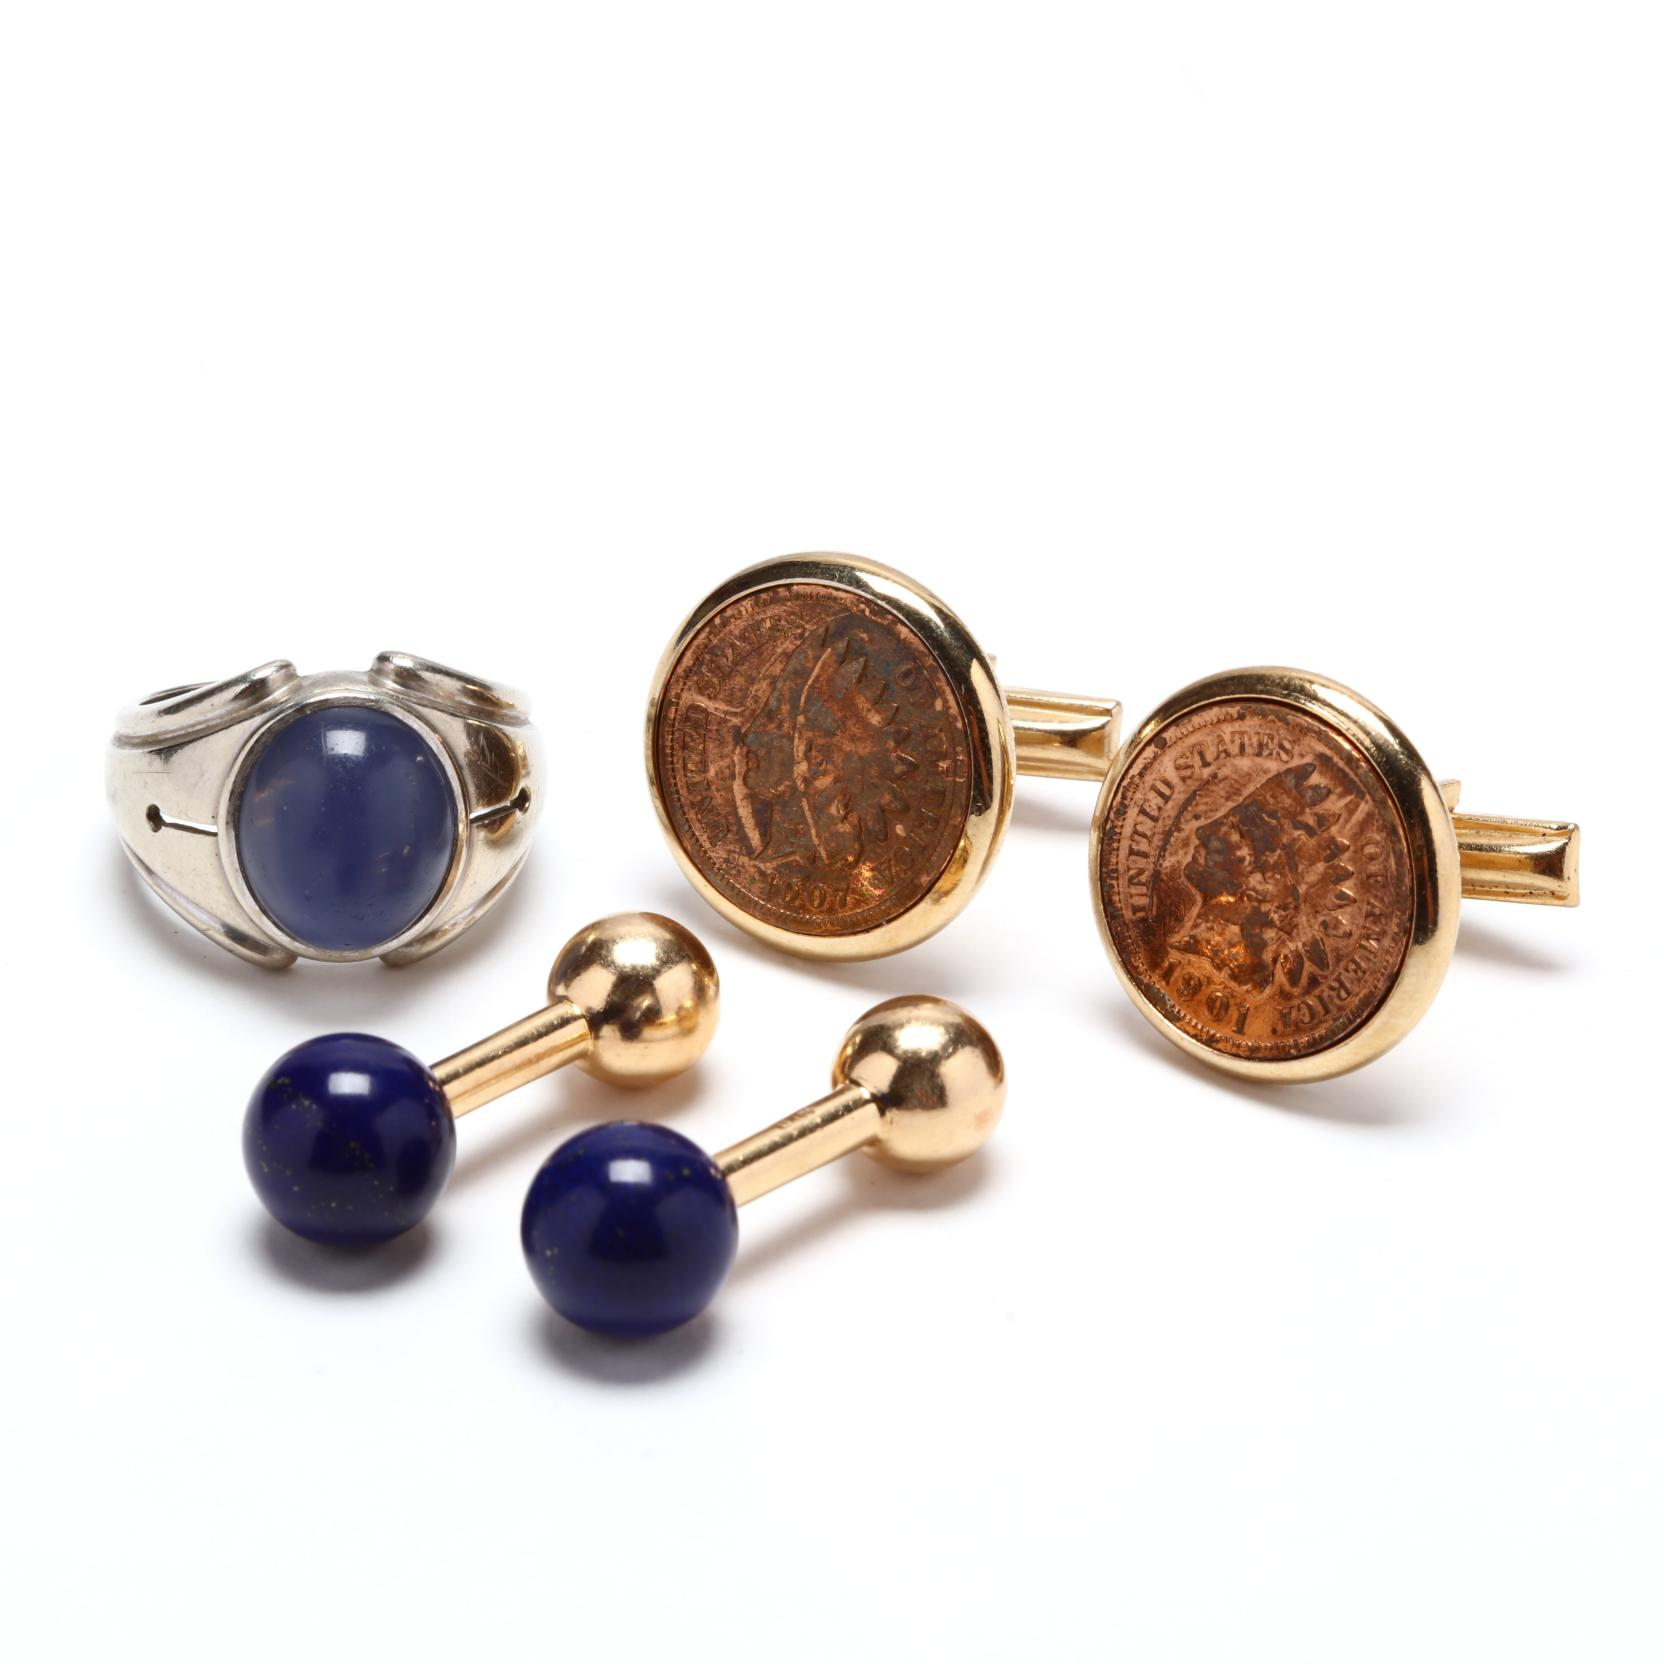 a-gent-s-vintage-quartz-ring-and-two-pairs-of-cufflinks